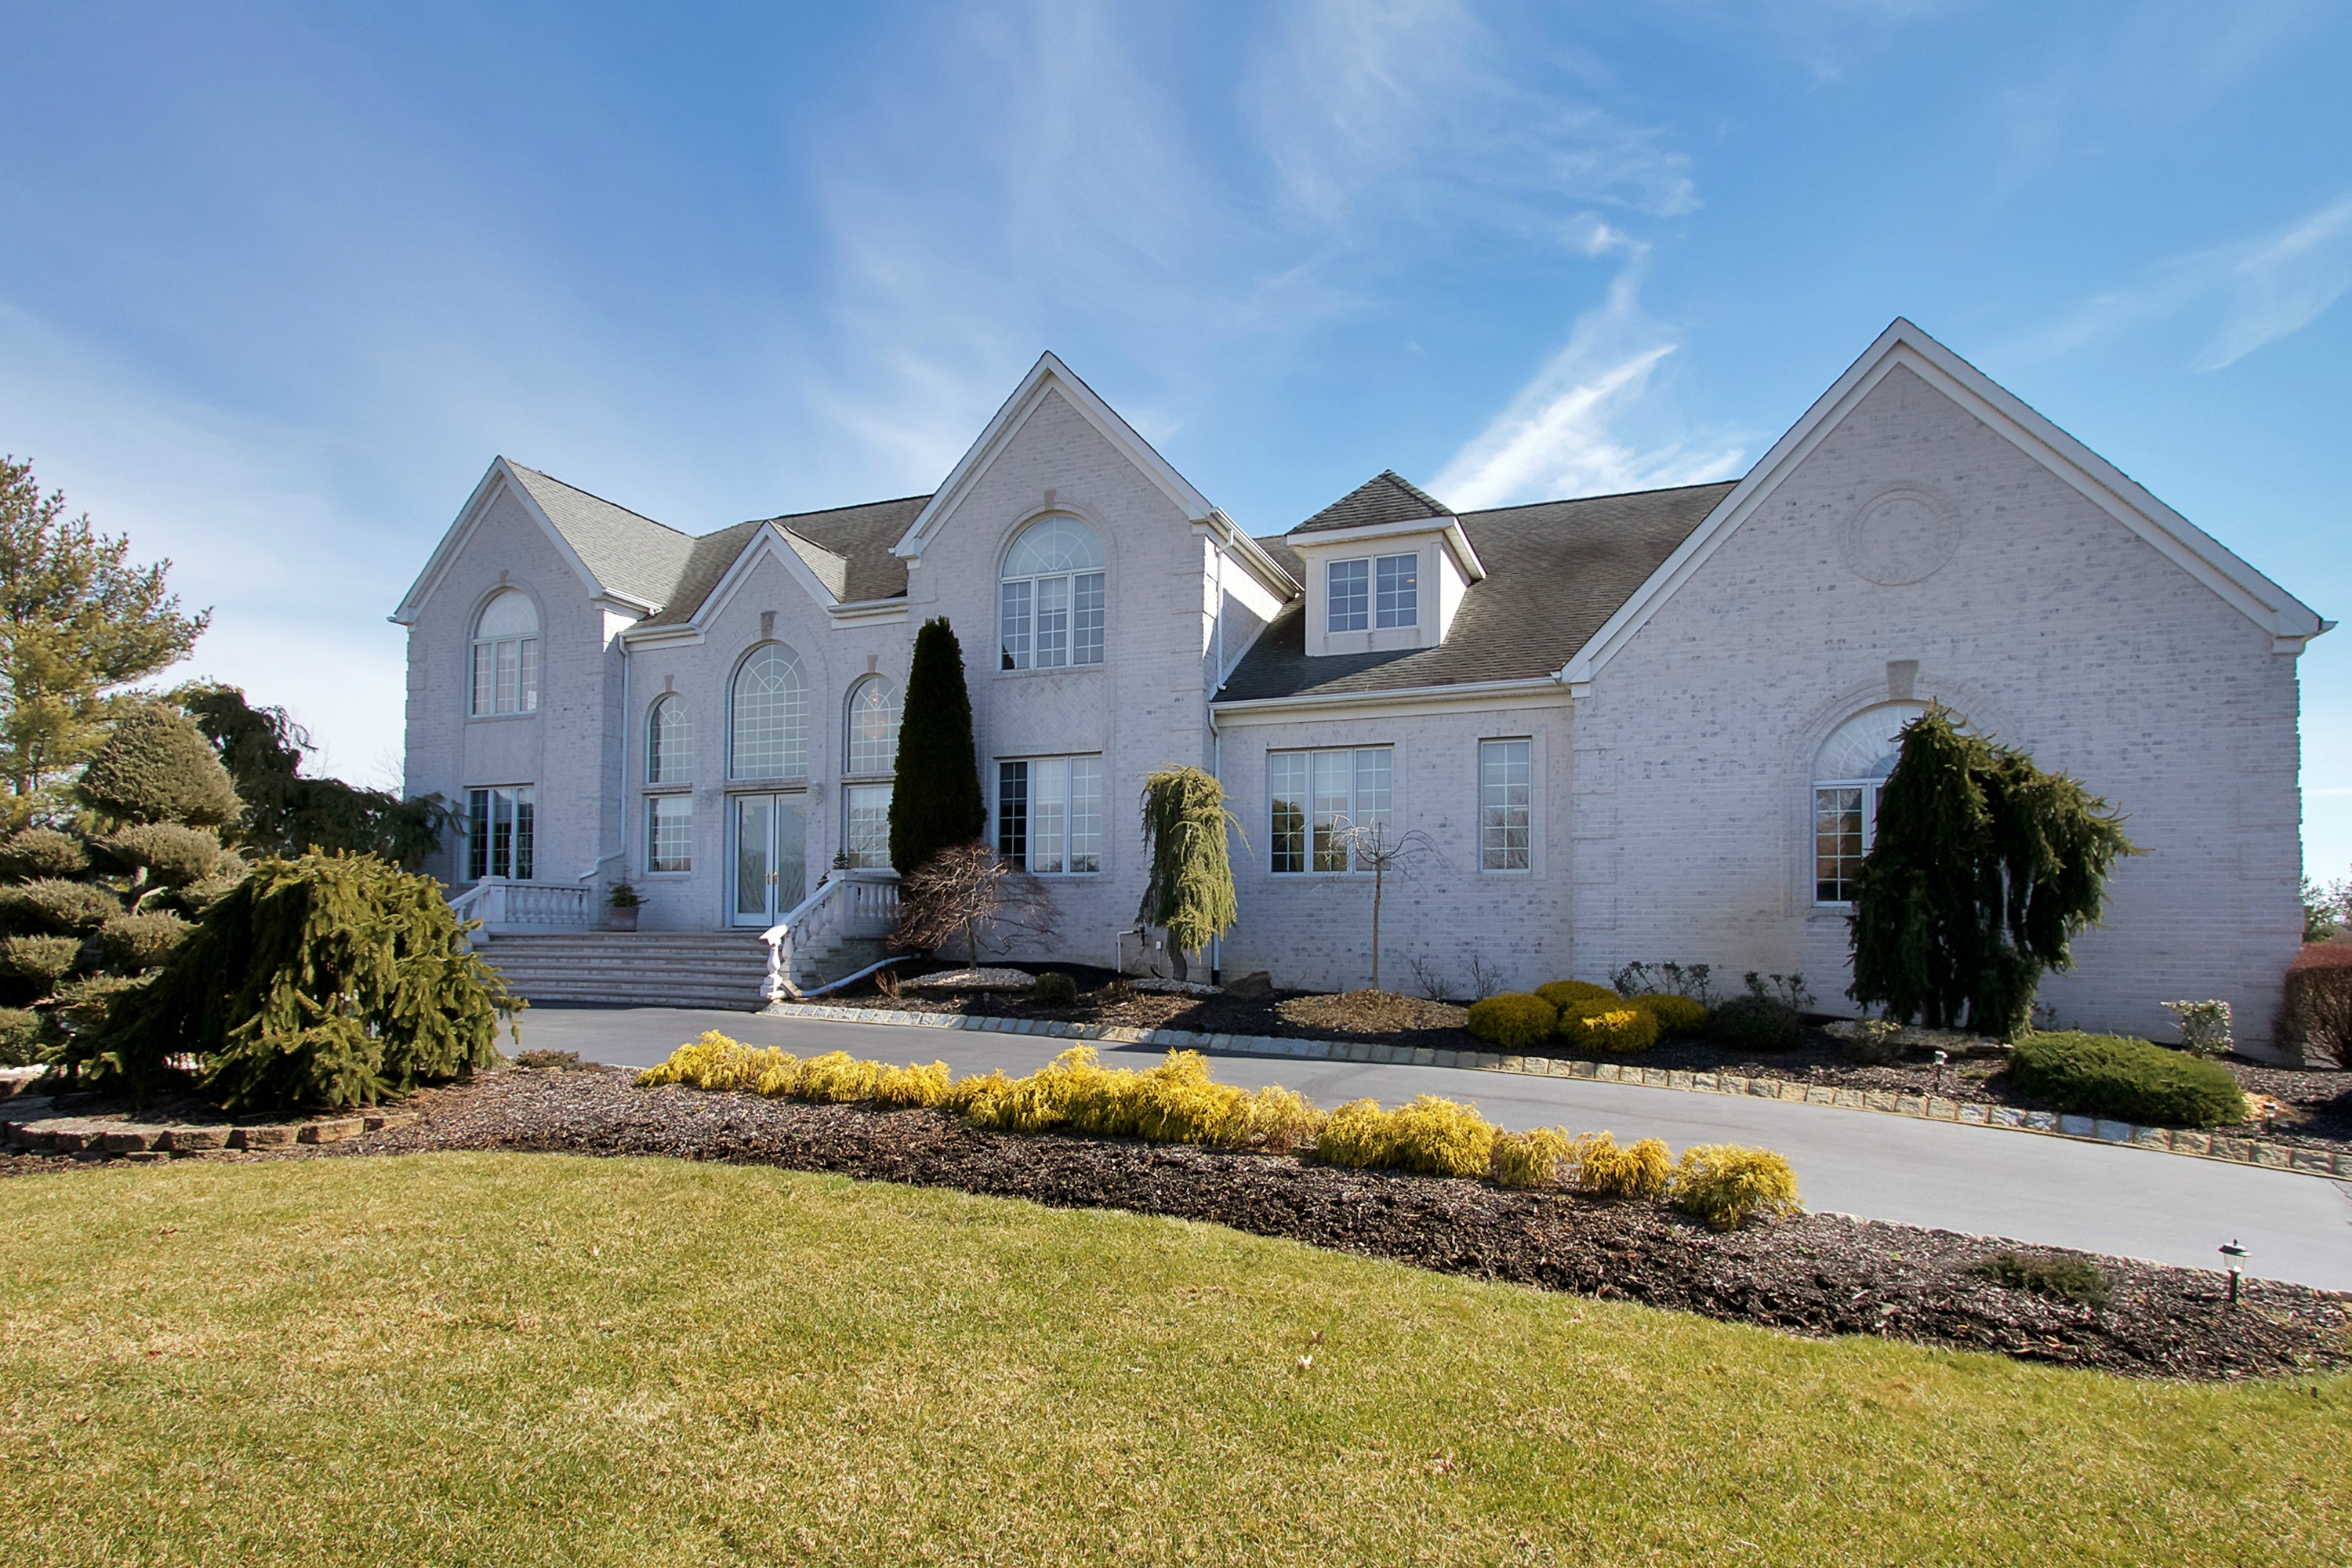 Single Family Home for Sale at Building on the extraordinary 11 Deputy Minister Drive Colts Neck, New Jersey 07722 United States